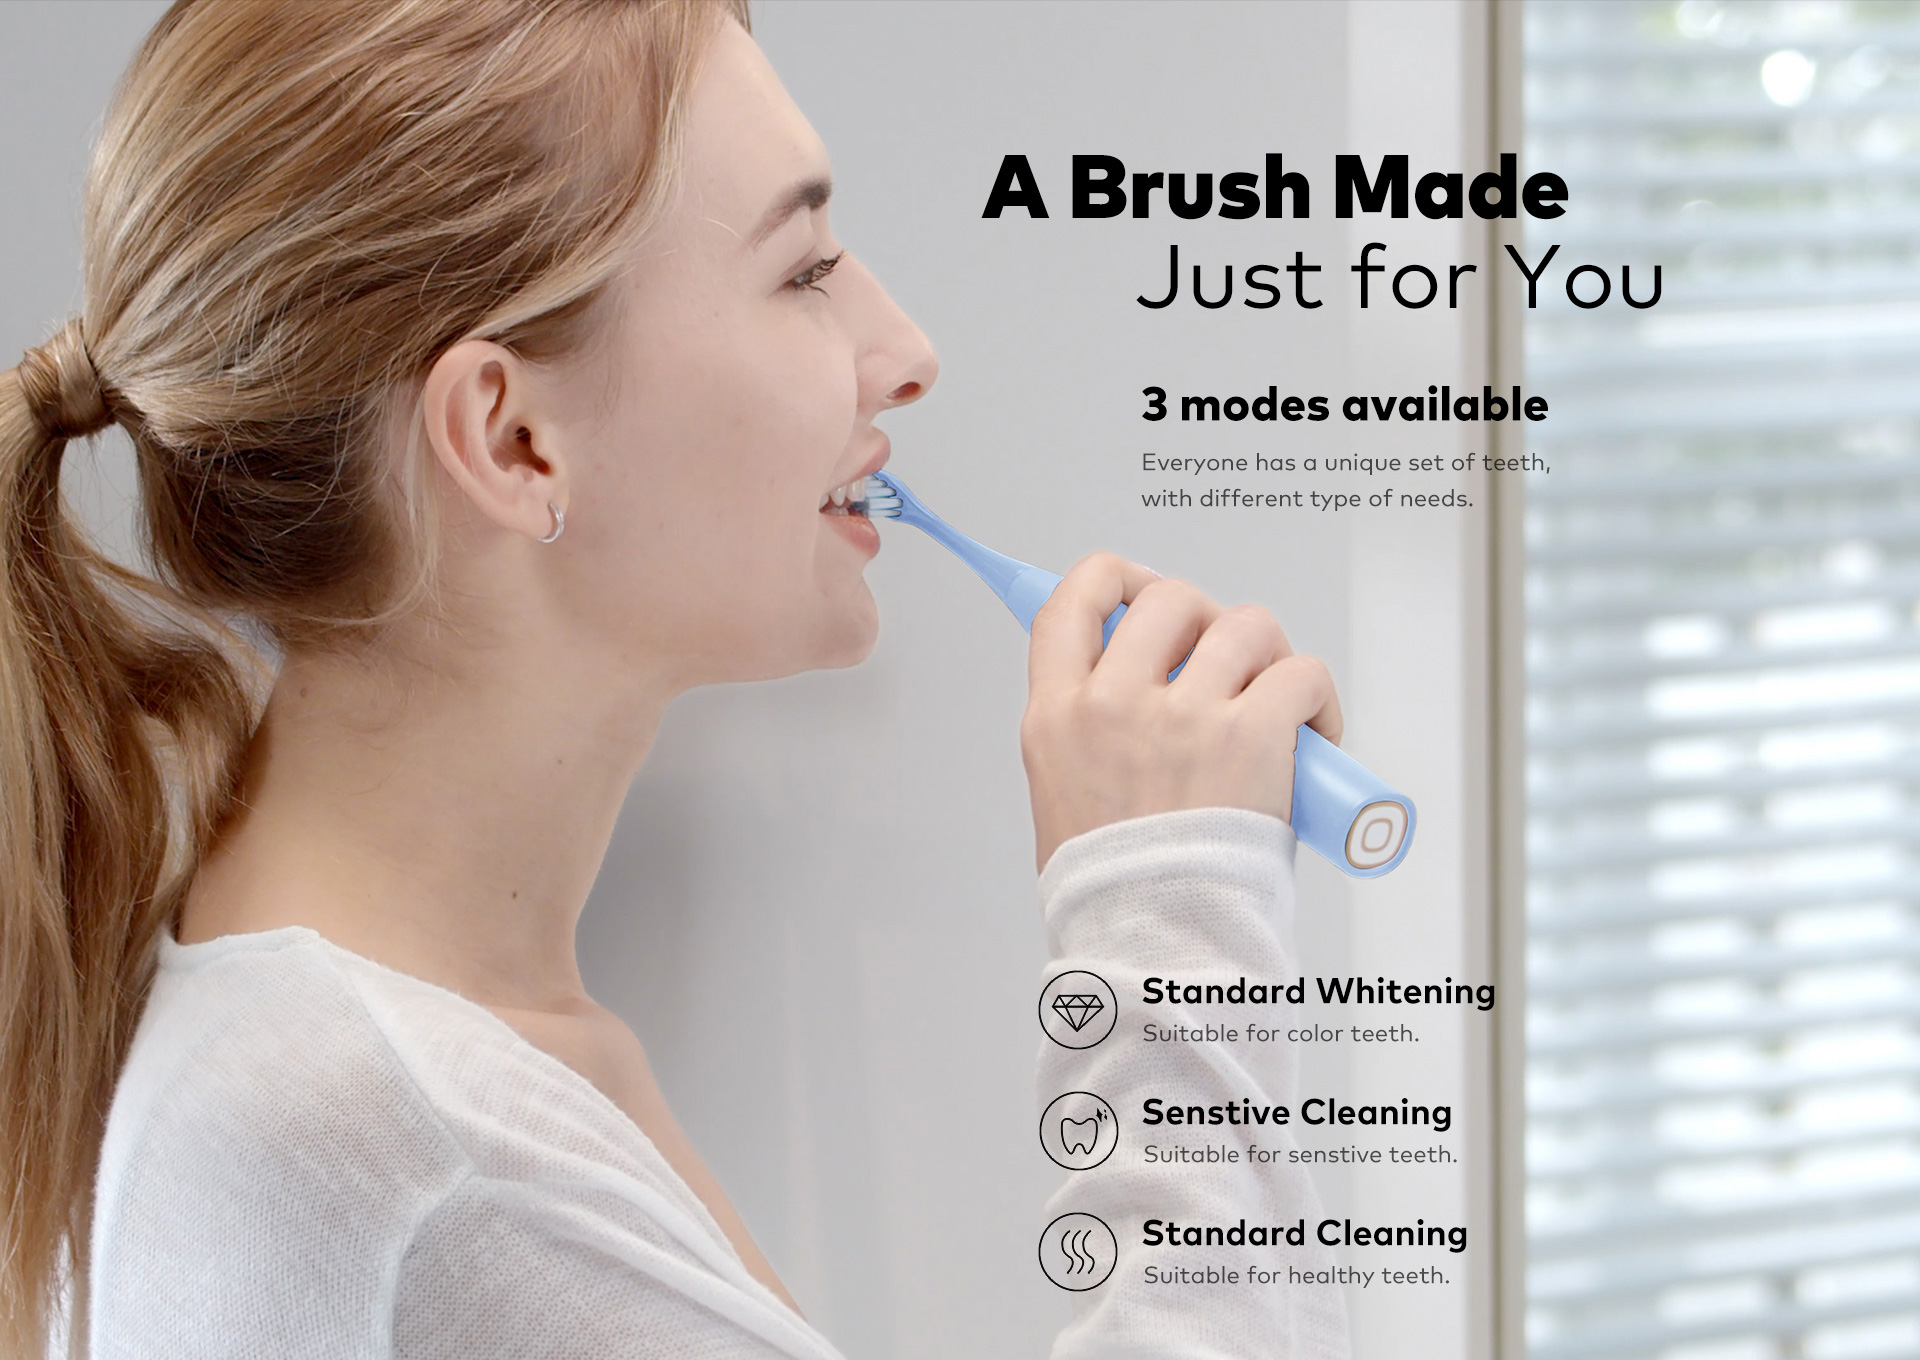 a brush made just for you